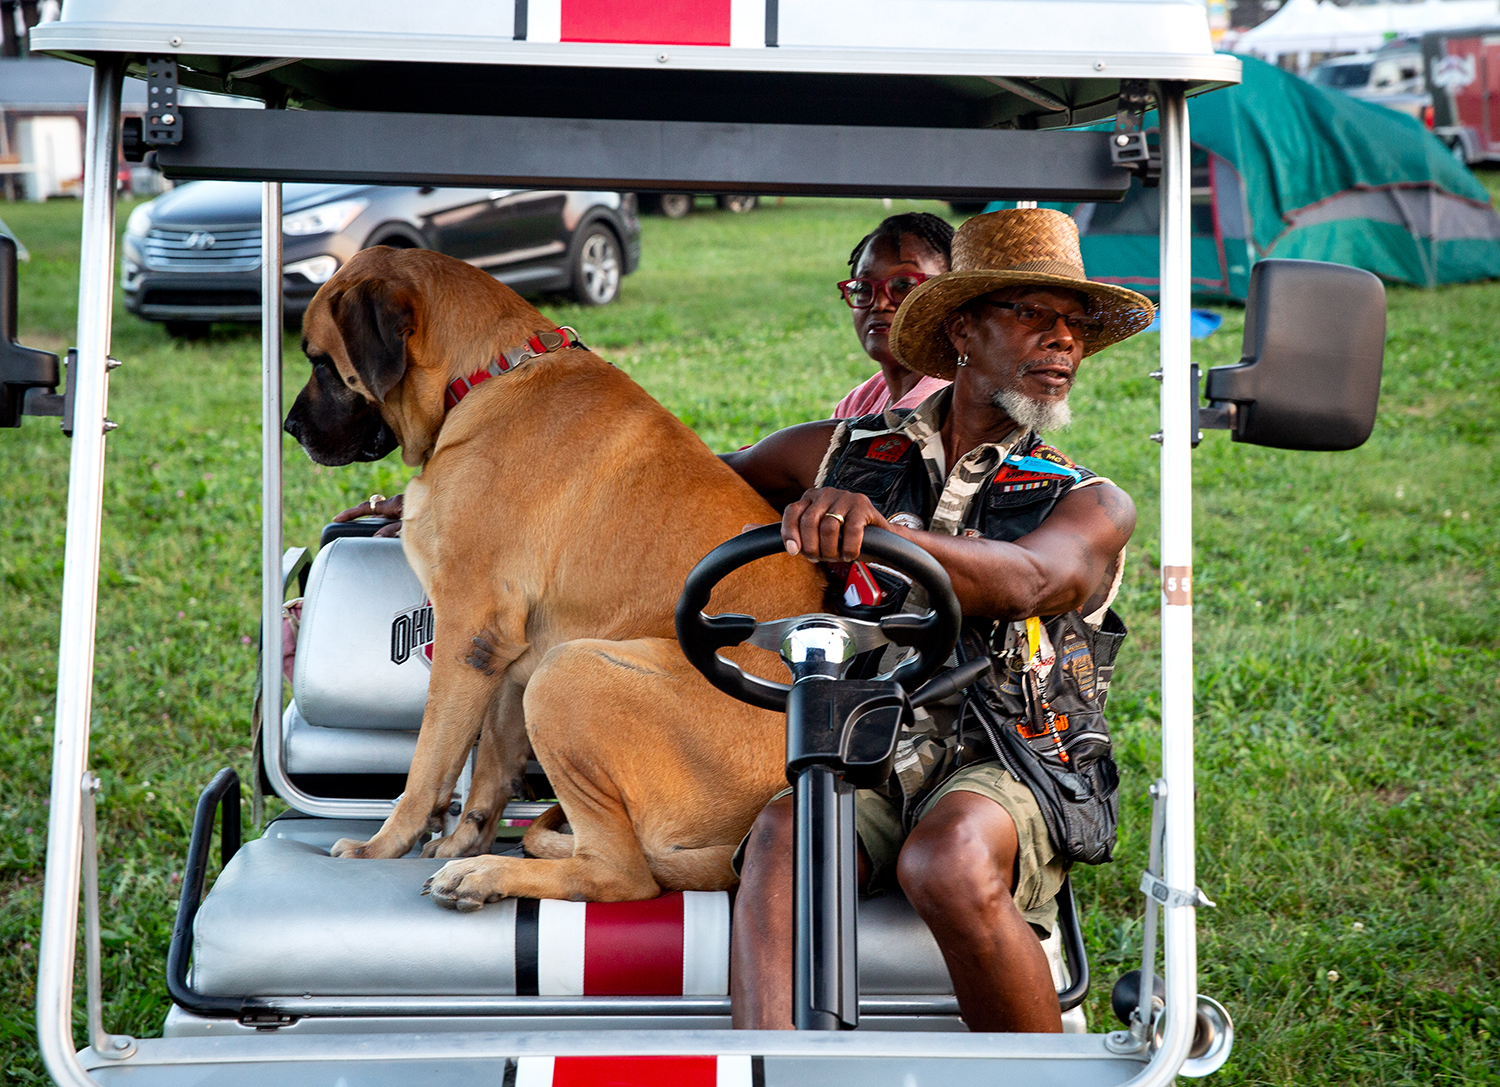 Dan Coleman drives and Sheba, a English Mastif, shares the front seat while Coleman's wife, Renessa, takes a spot on the back of their golf cart at the National Bikers Roundup Wednesday, Aug. 1, 2018 Illinois State Fairgrounds in Springfield, Ill. The Coleman's are from Columbus, Ohio.[Rich Saal/The State Journal-Register]